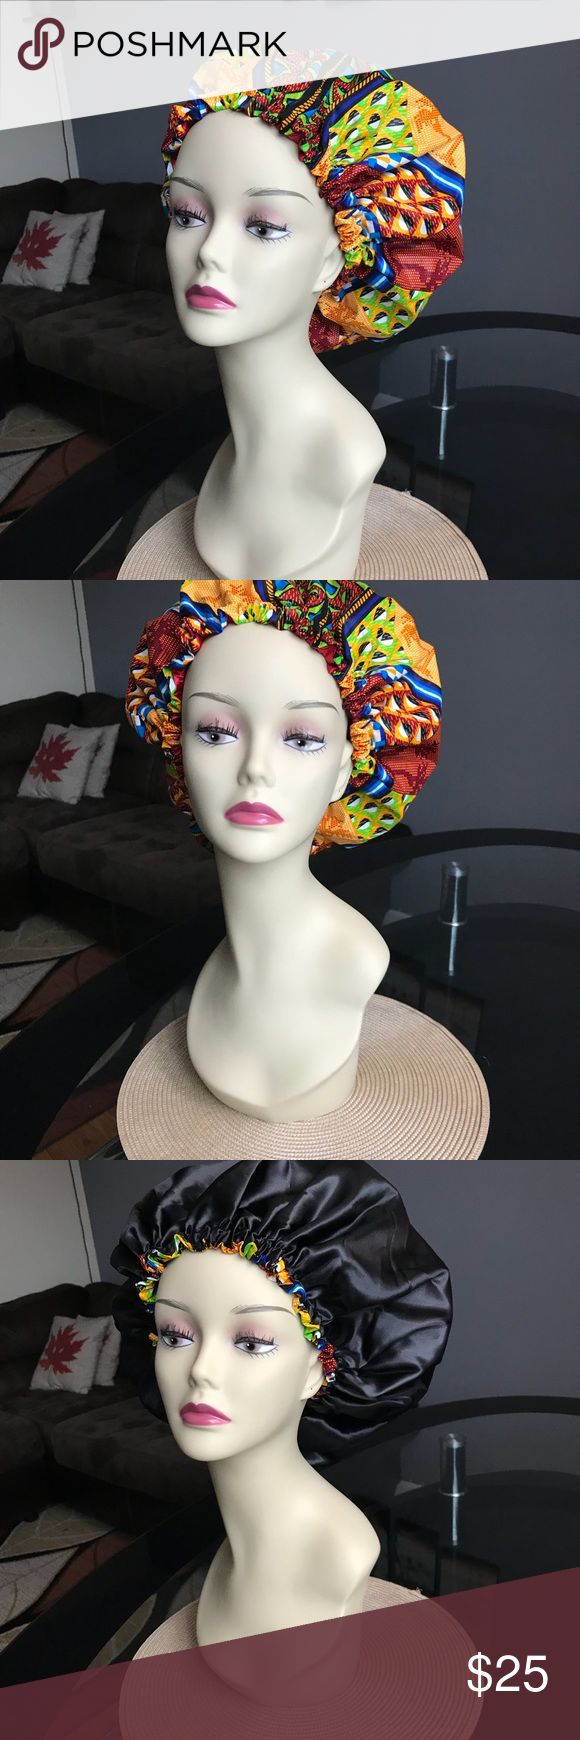 "Ankara Bonnet Please tell us the color of Satin you want under your bonnet. Chose from the available satins we posted.   The bonnet has 100% Ankara Dashiki Fabric on one side, and 100% quality Silky soft satin fabric on the other side. We choose the most modern beautiful vibrant colors of African Ankara prints for our bonnets.   The standard adult size elastic band measures 24"". And the diameter is 34"".  Please visit my shop and let me know if you want your bonnet with any other fabric you…"